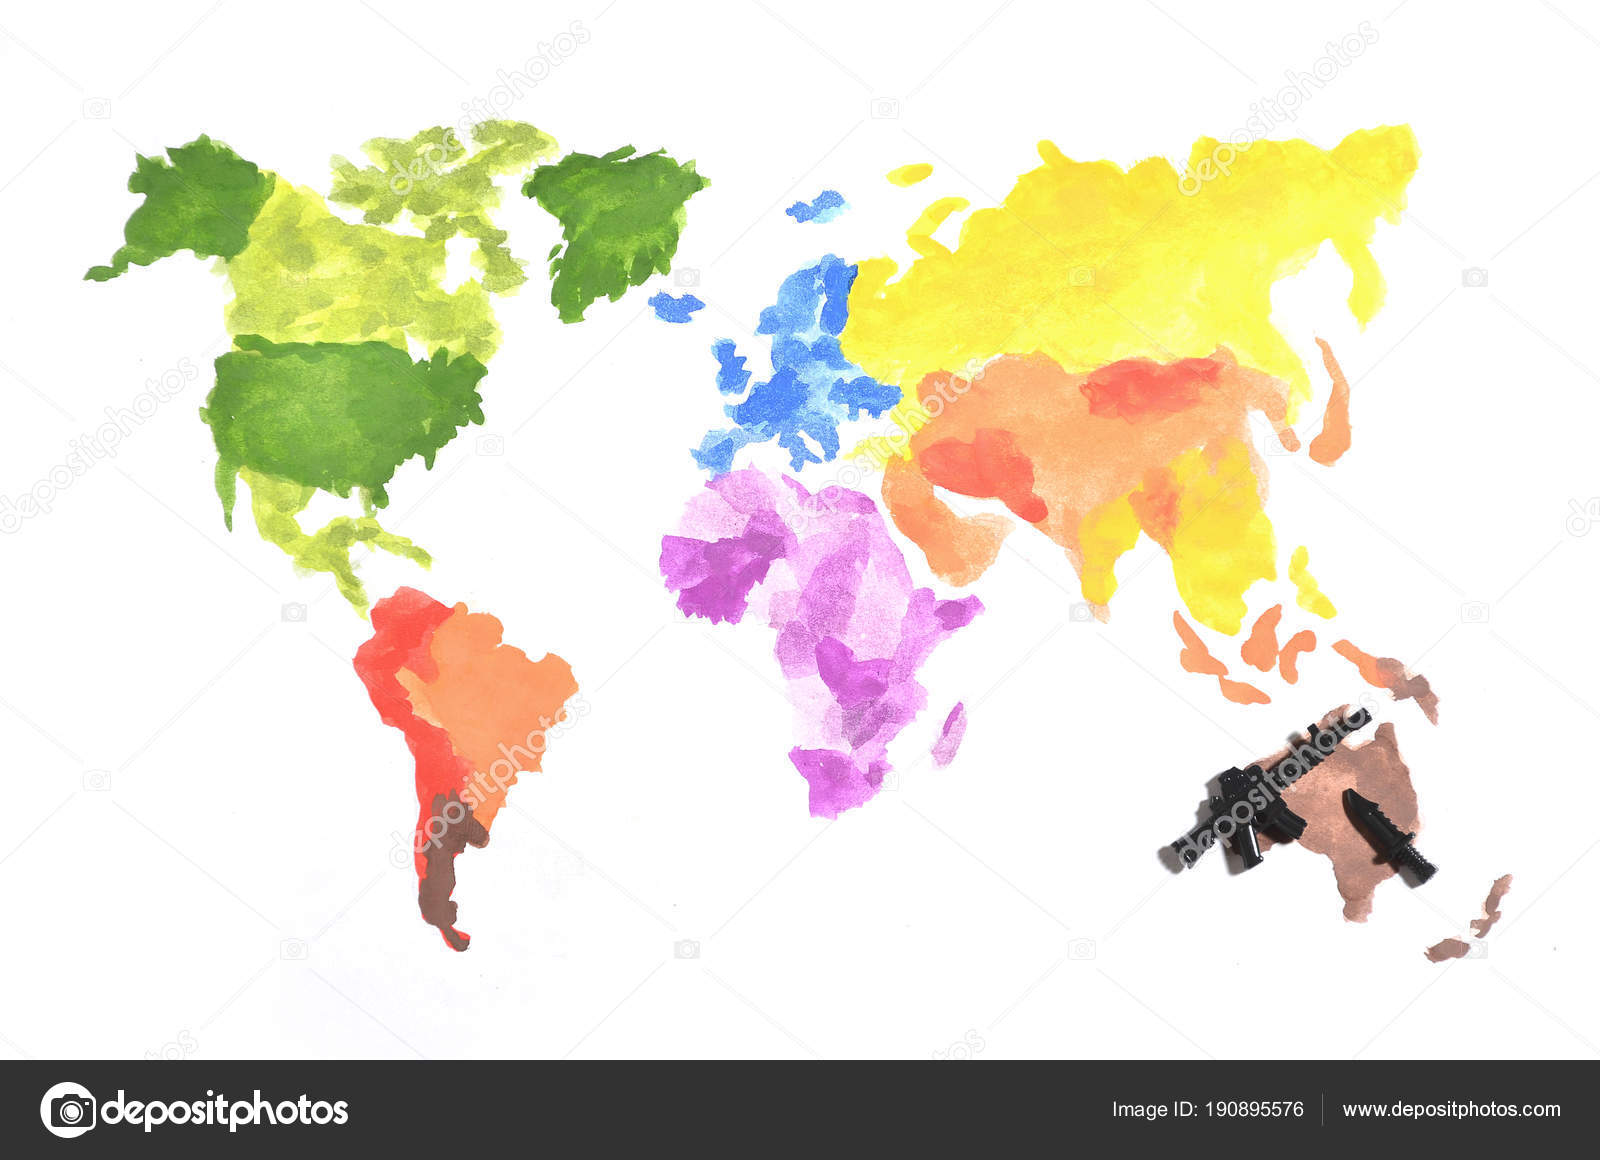 World map made colored watercolor paints white paper participation world map made colored watercolor paints white paper participation black stock photo gumiabroncs Image collections